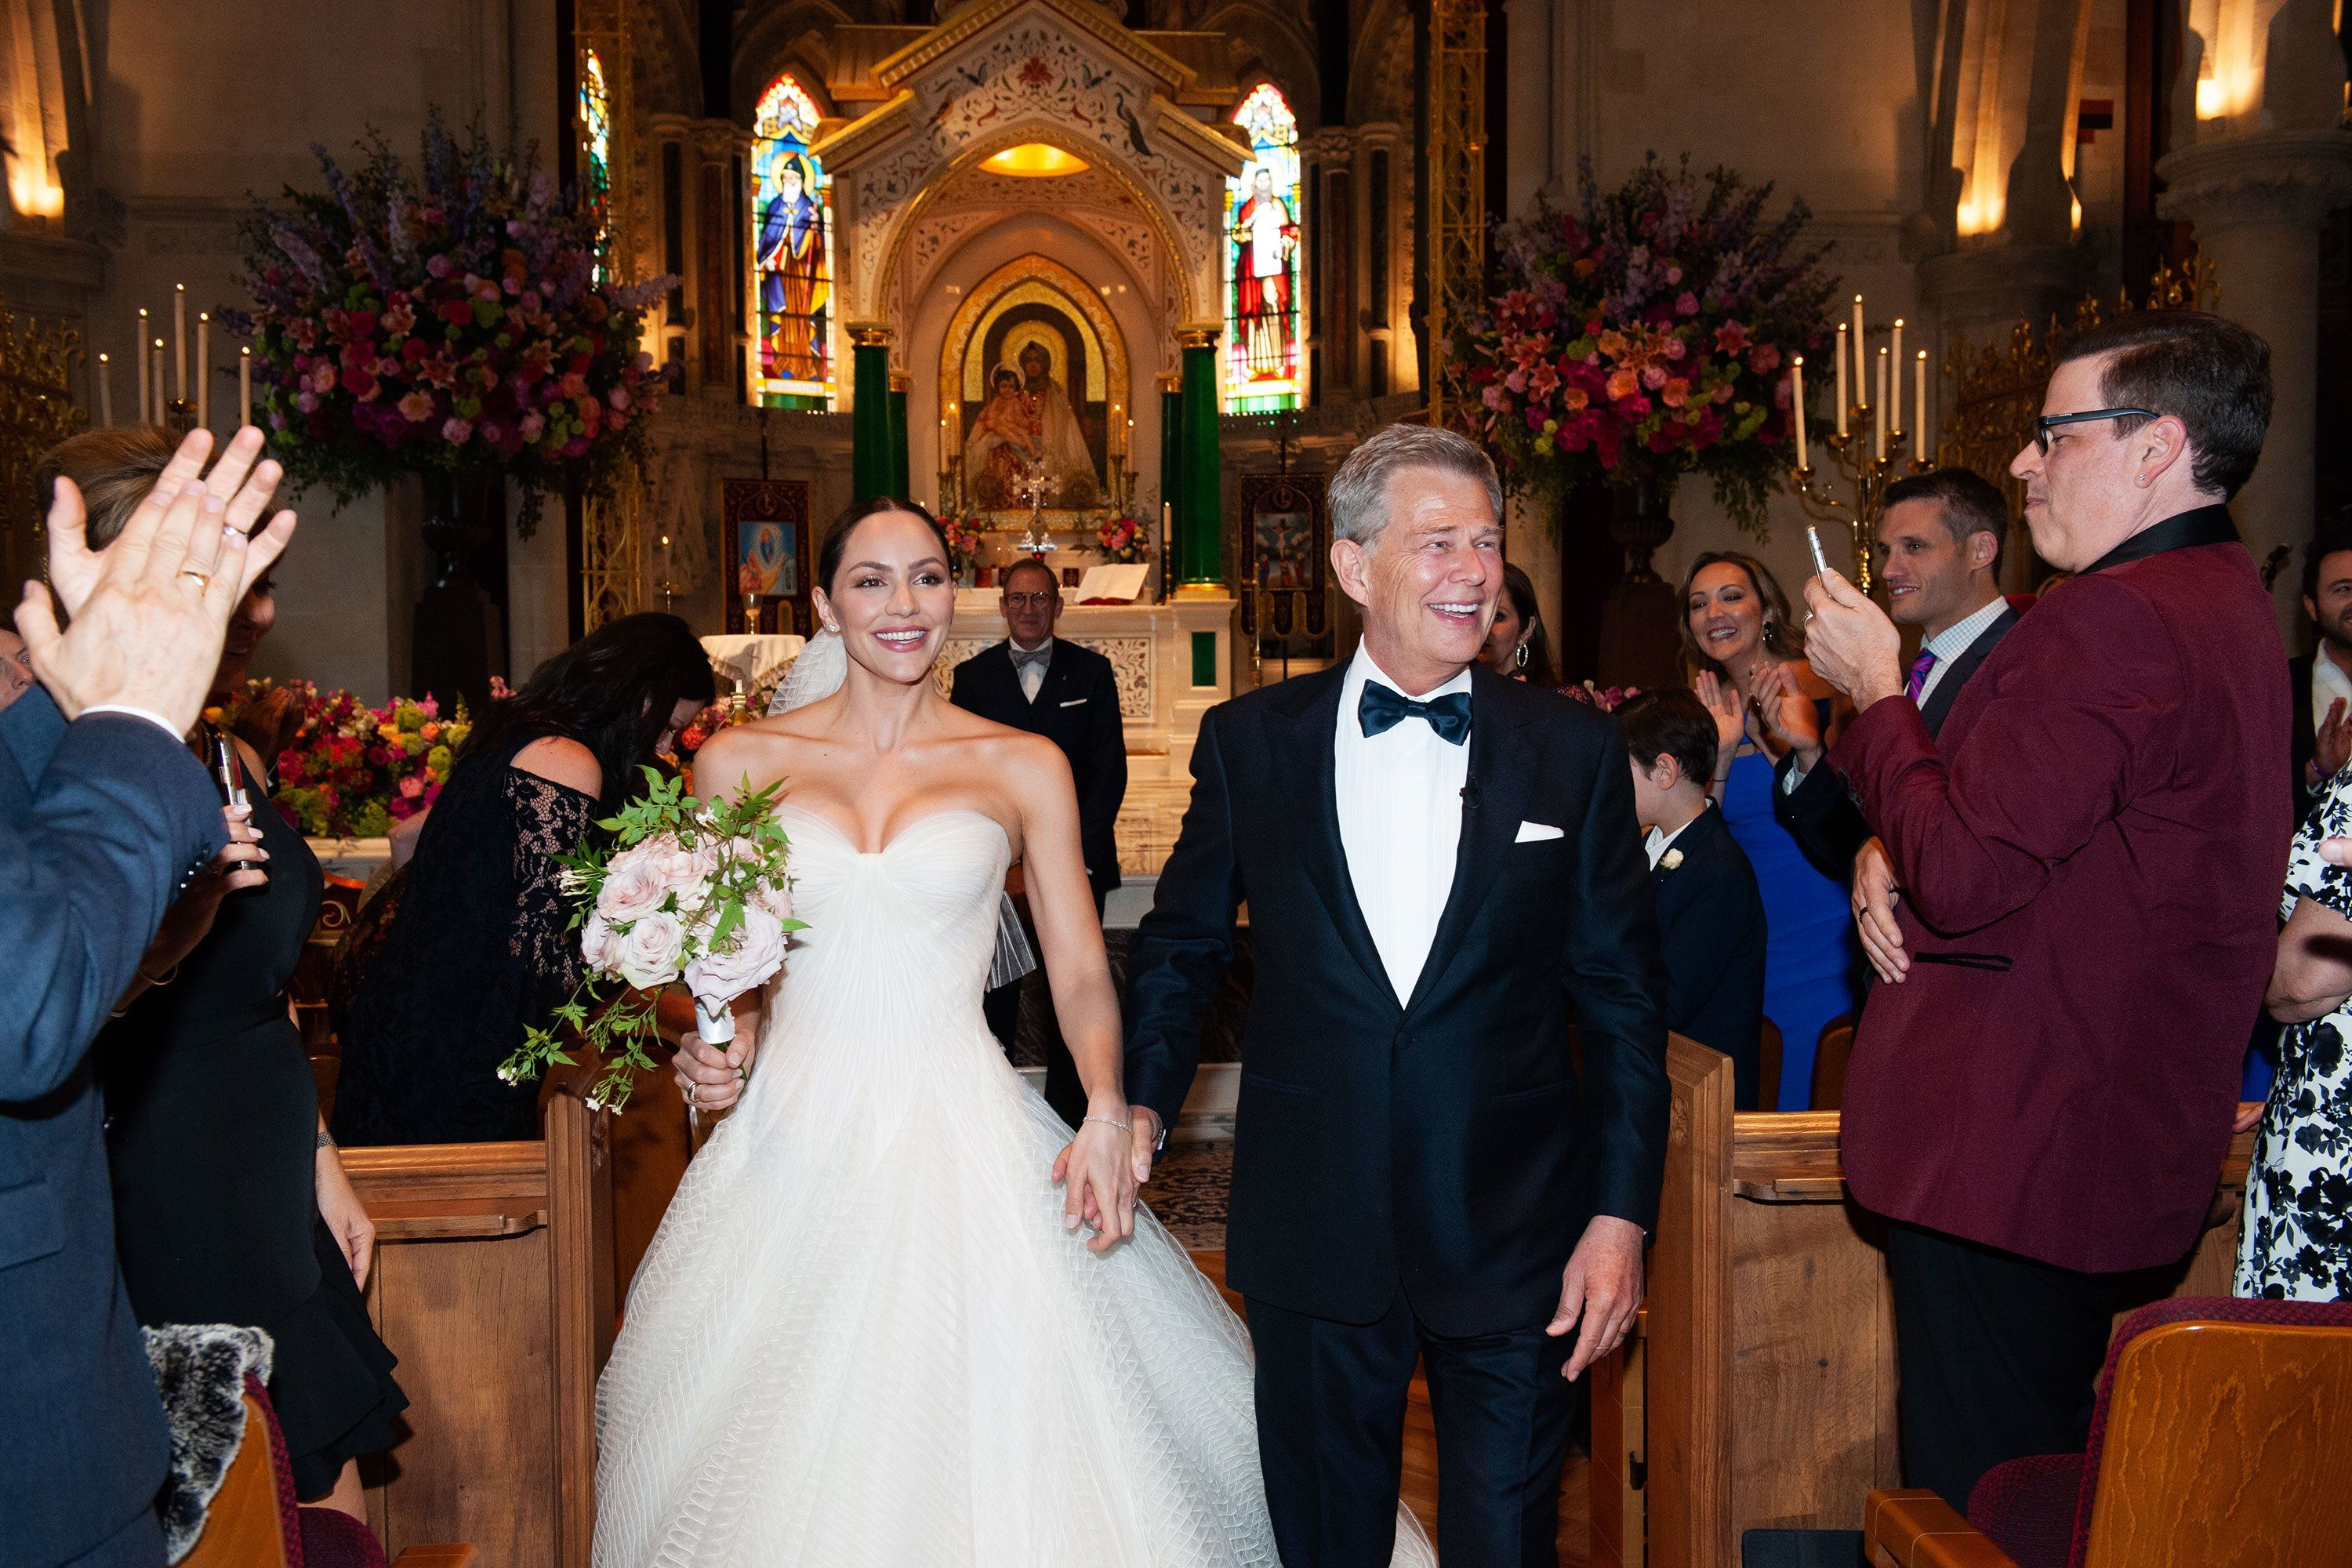 An Exclusive Look Inside Katharine Mcphee And David Foster S Wedding In London Zac Posen Wedding Gowns Gorgeous Wedding Katharine Mcphee